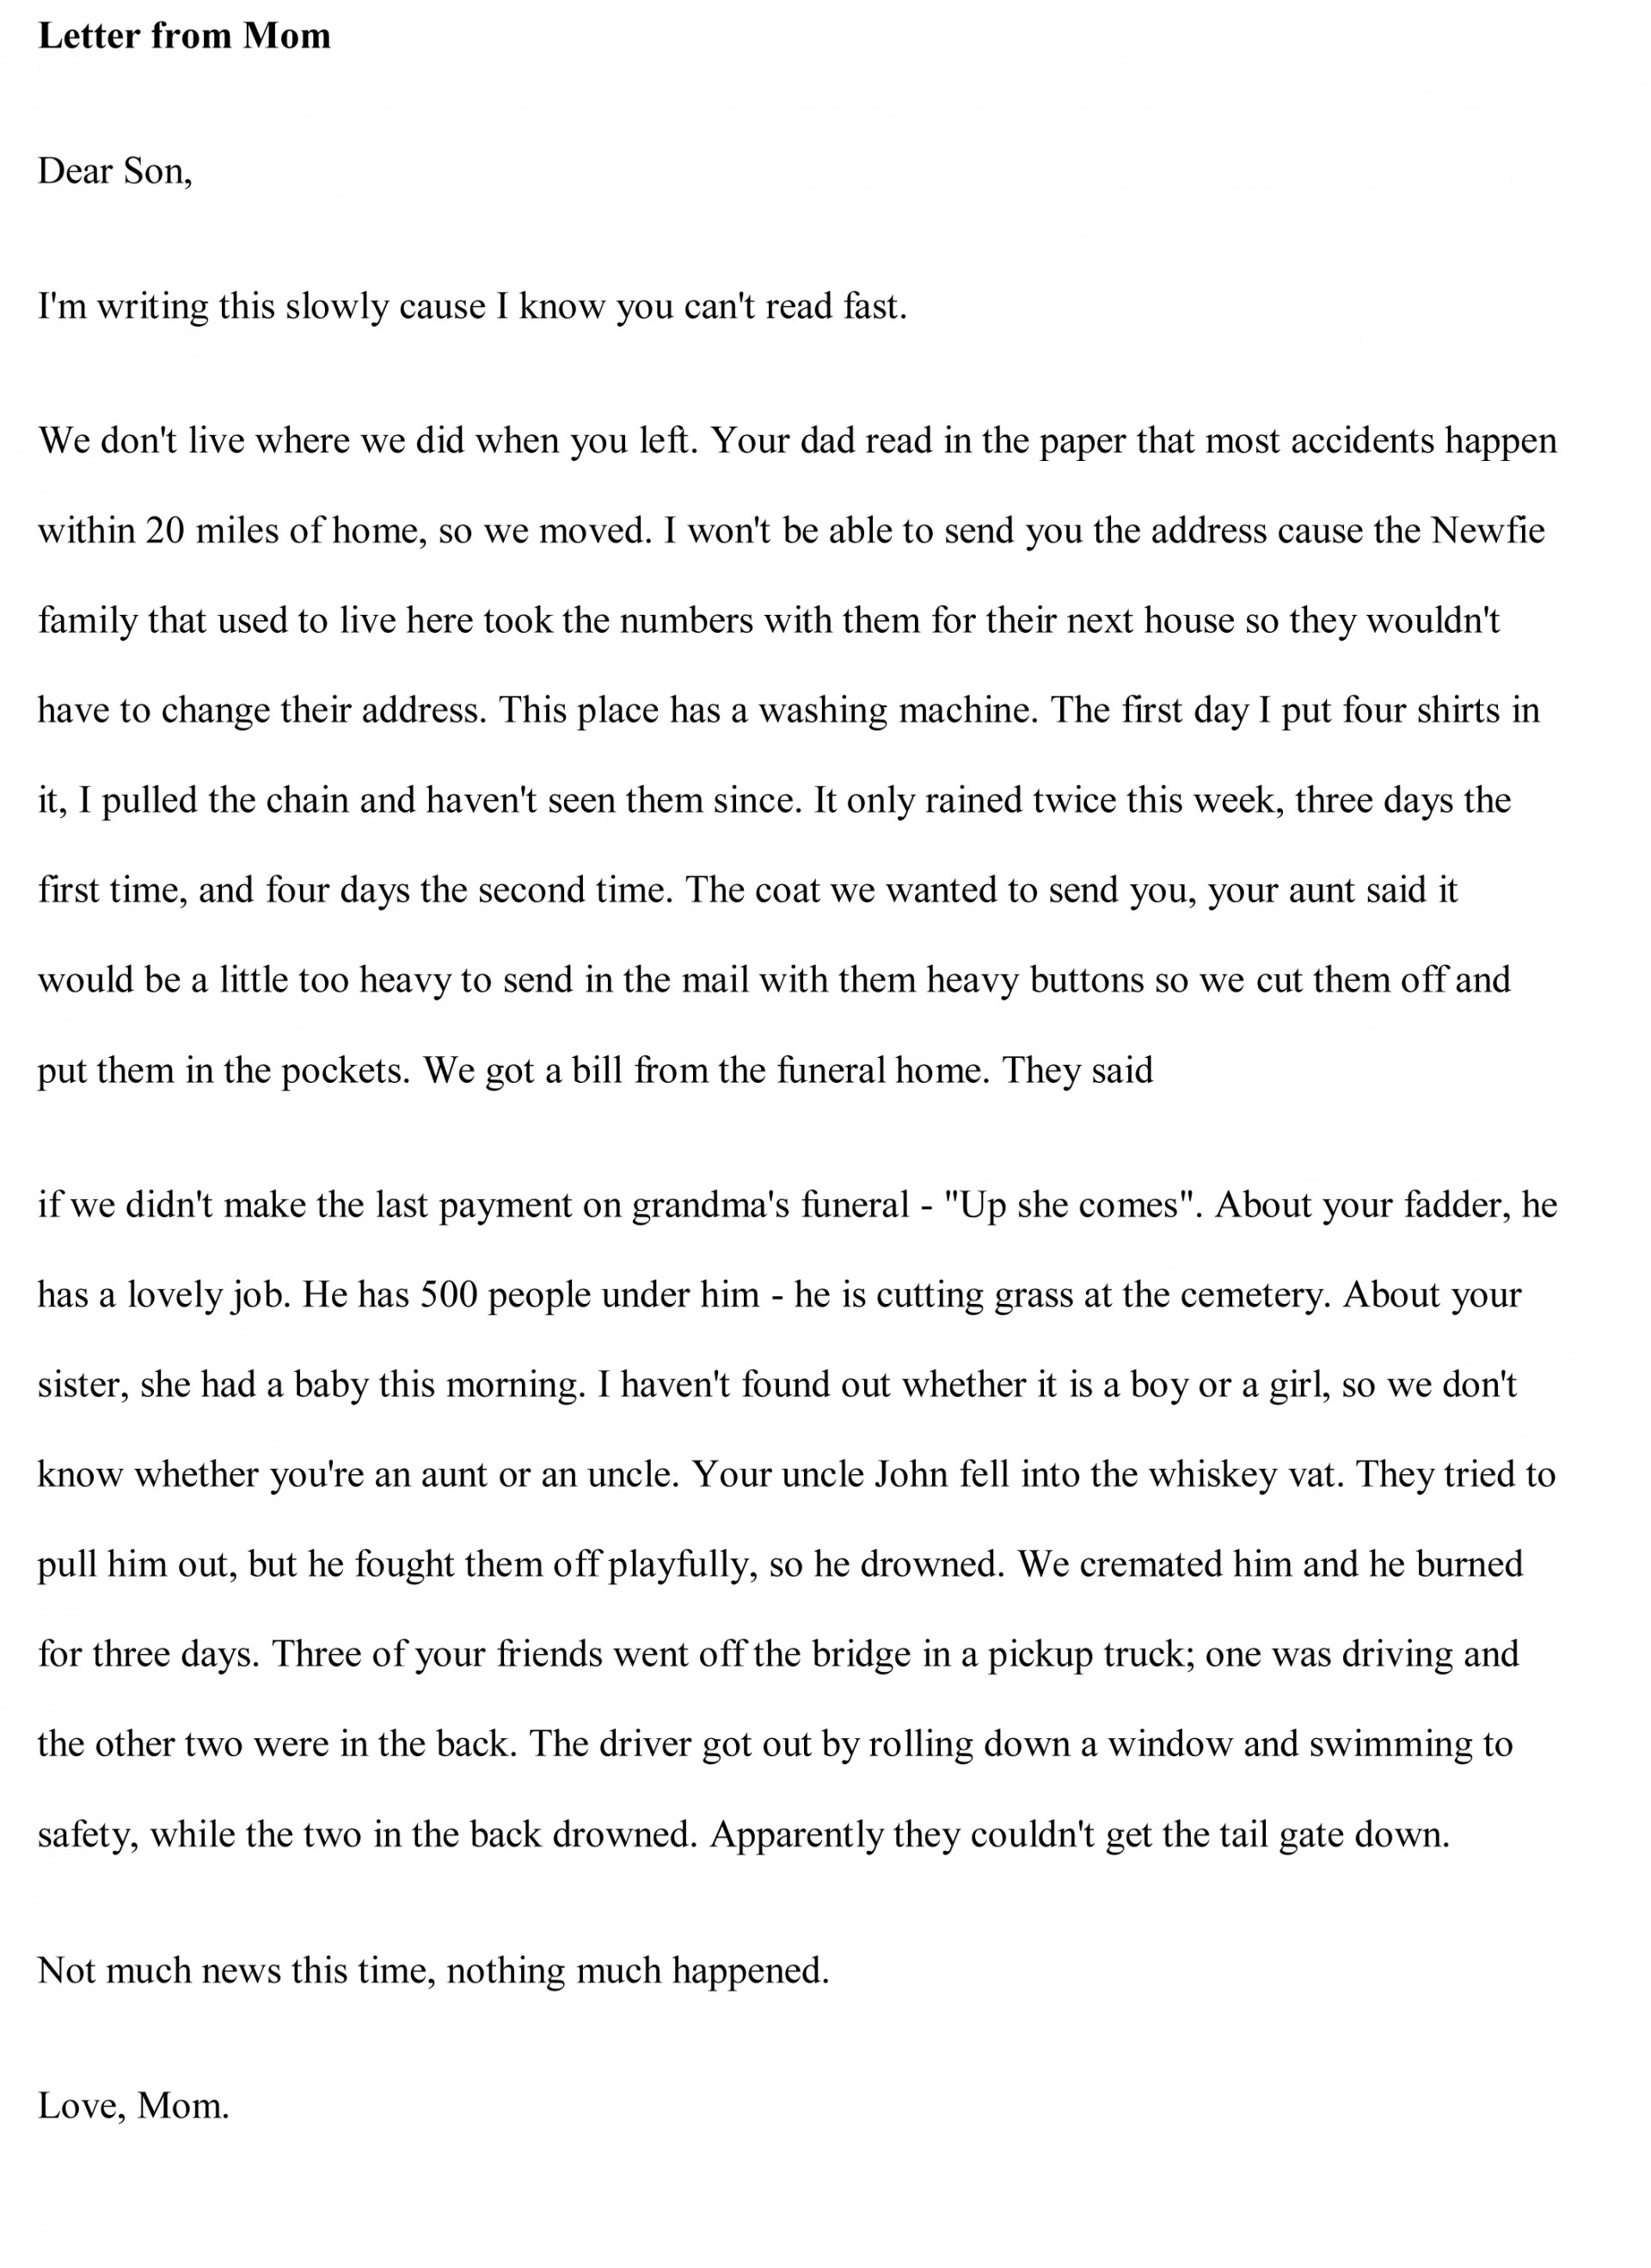 015 Interesting Essay Topics Example Funny Free Amazing For High School Students Persuasive Argumentative Grade 5 1920